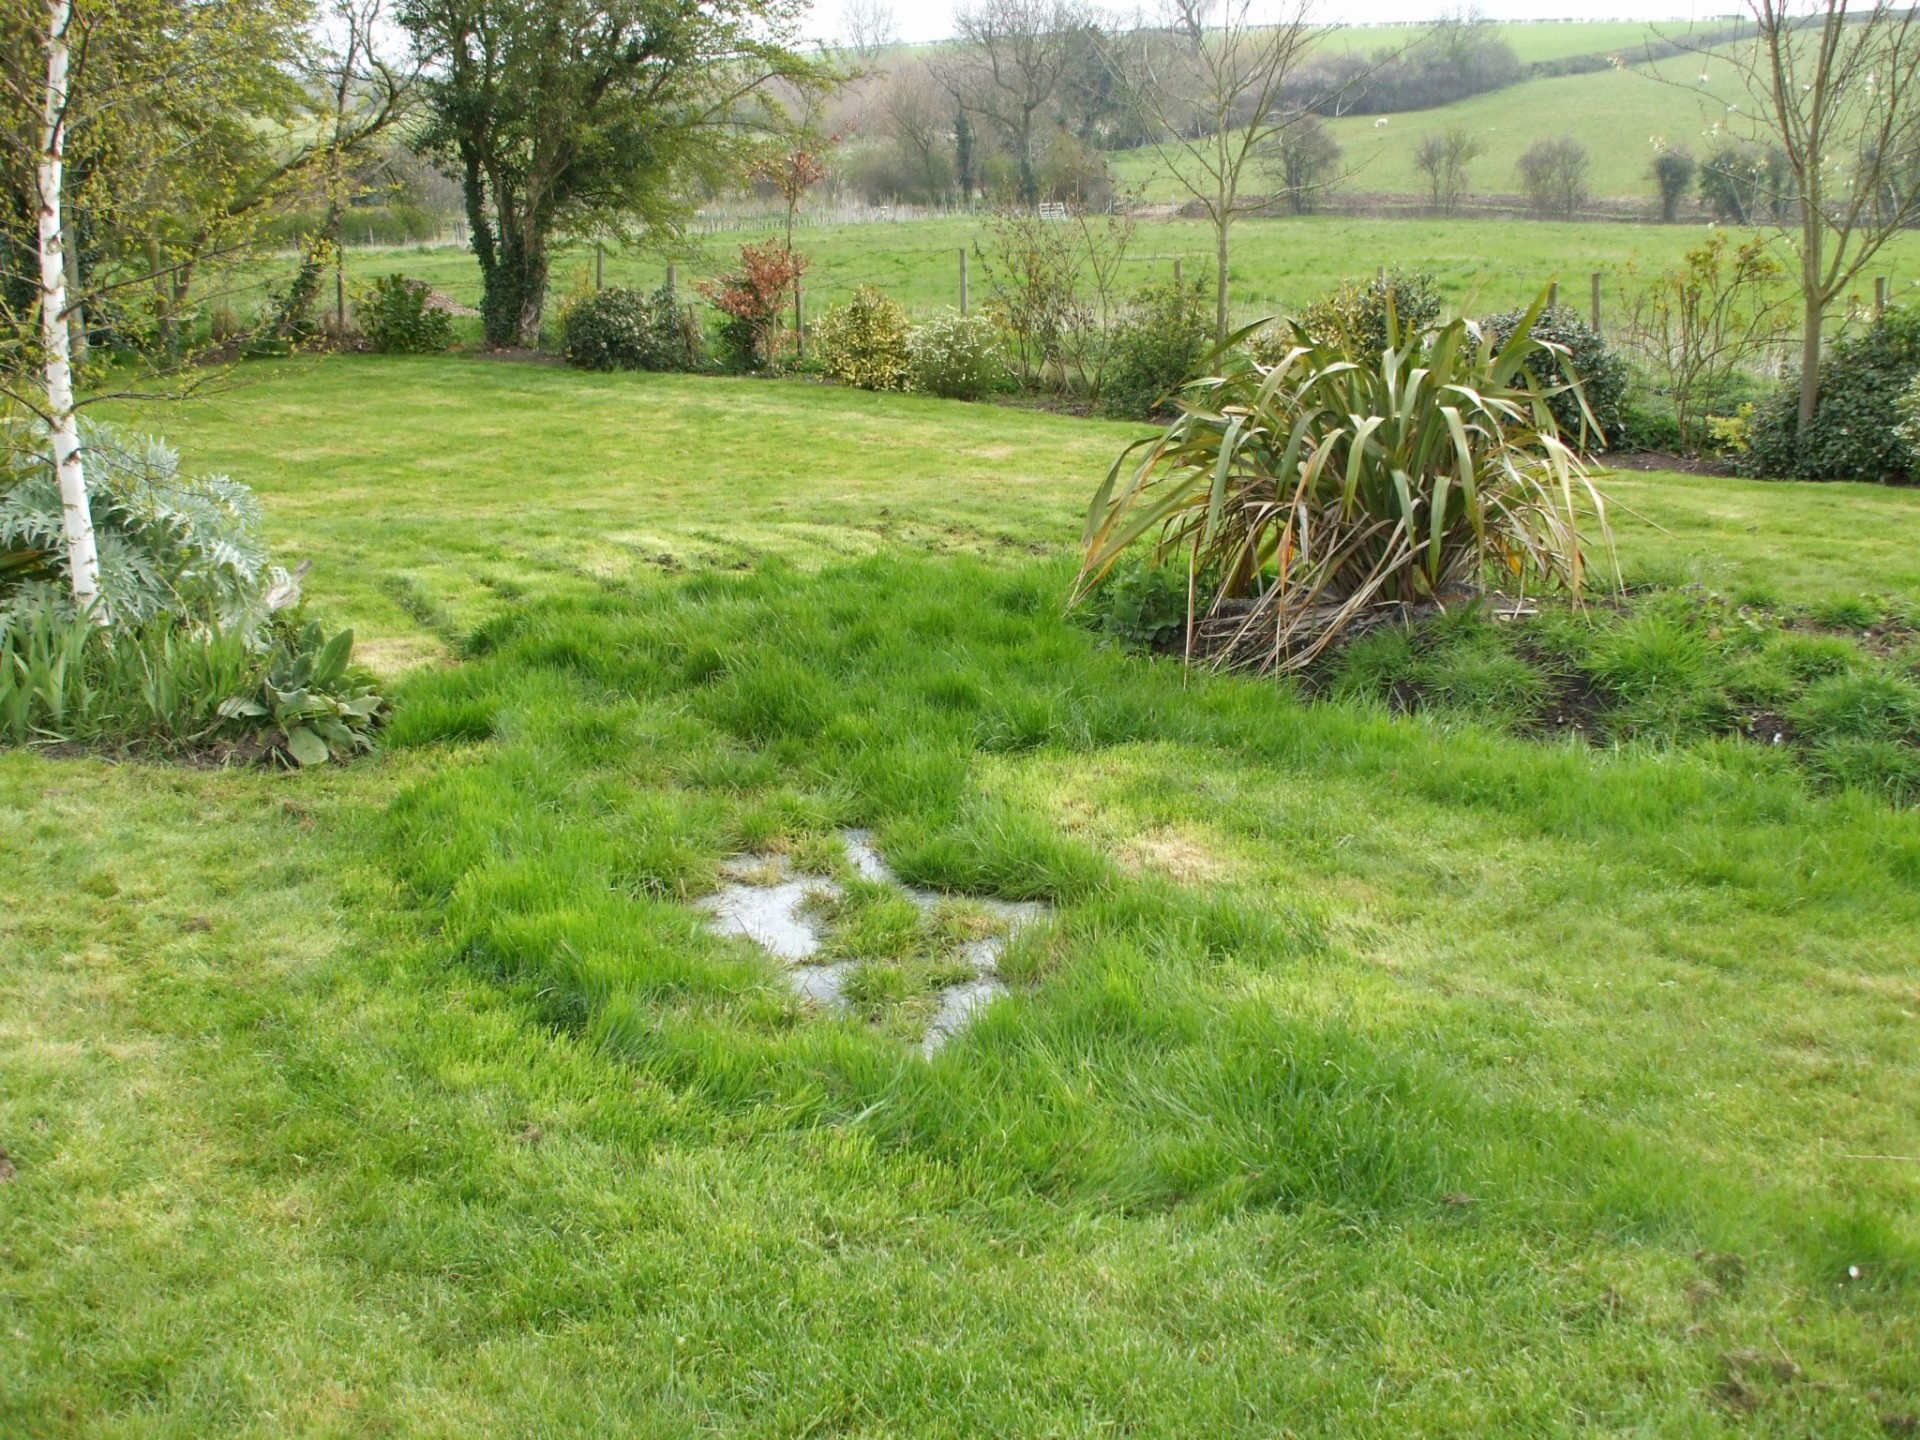 Septic Tank Conversion As An Answer For Failing Septic